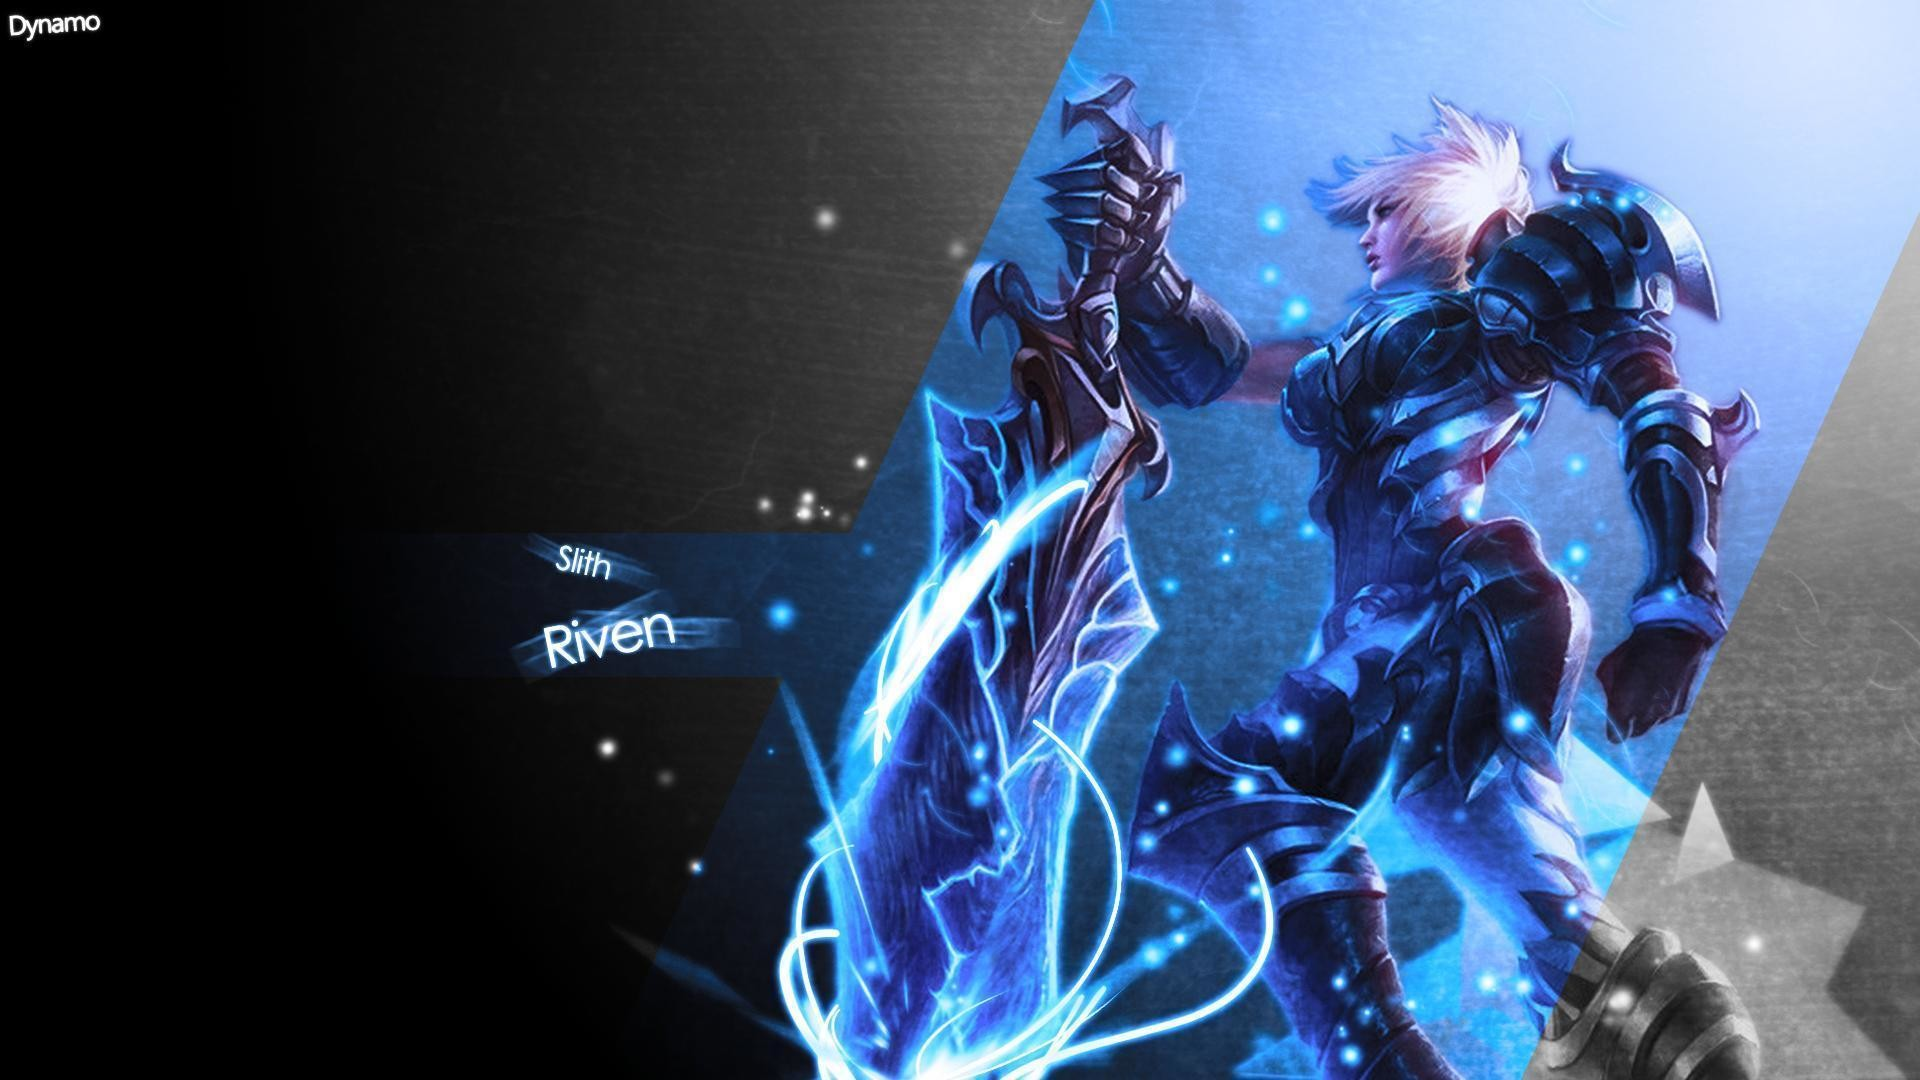 1920x1080 Riven Wallpaper – 1920×1080 High Definition Wallpaper, Background .